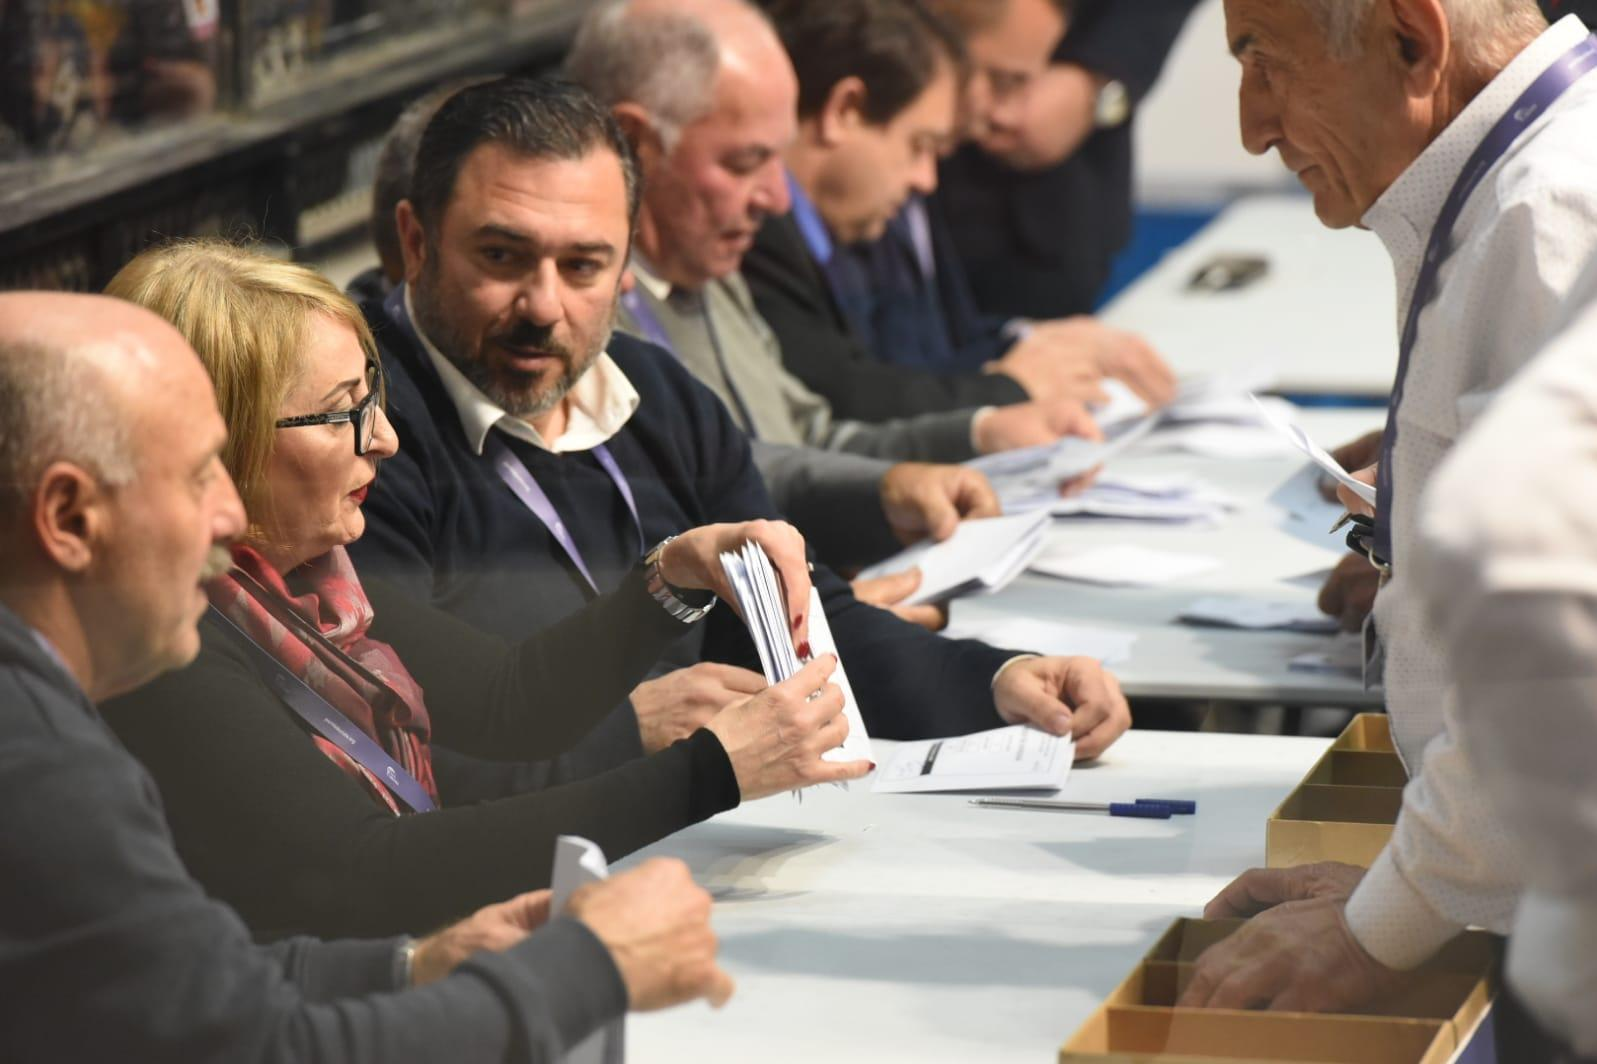 Party officials are kept busy during the vote reconciliation stage. Photo: Chris Sant Fournier